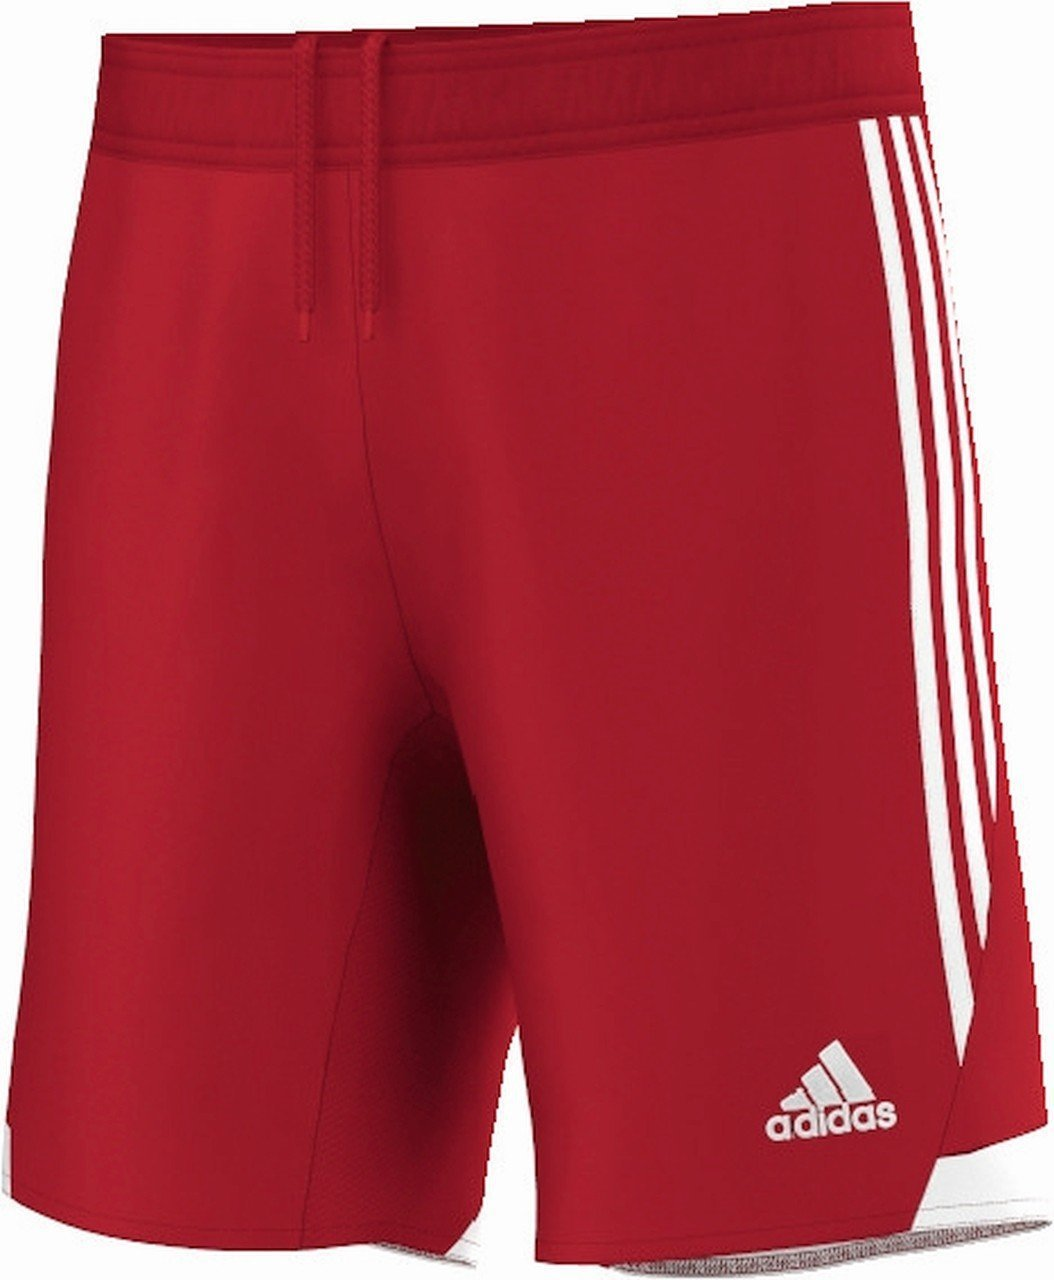 dc424ecb55c8d7 pantaloncini adidas da calcio - vaticanrentapartment.it